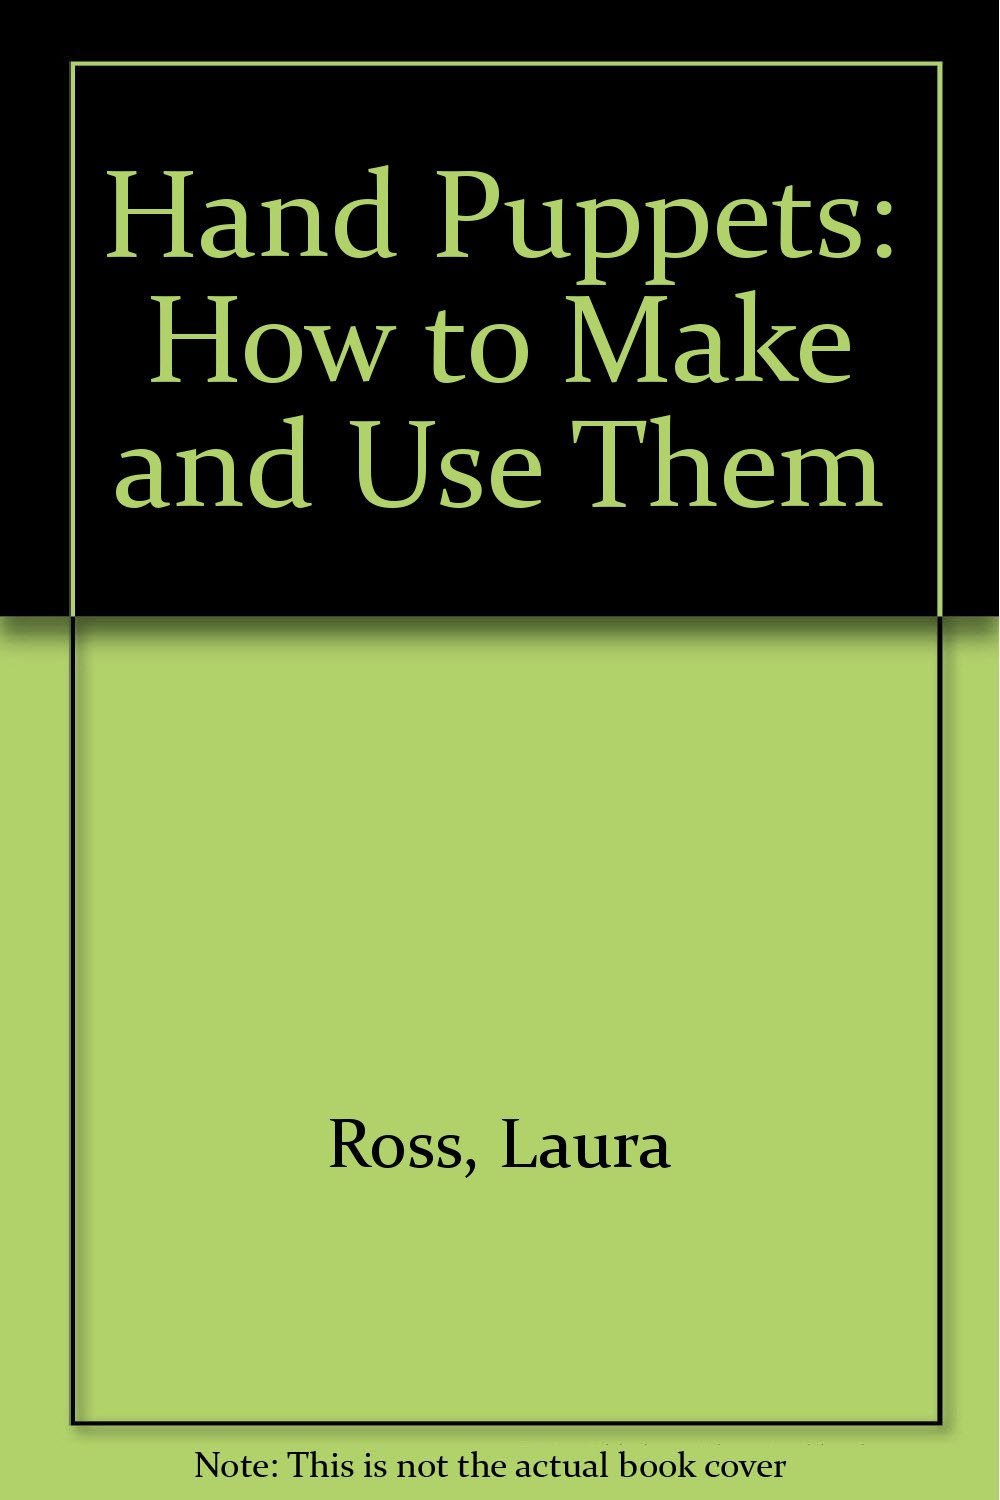 Hand Puppets: How to Make and Use Them: Laura Ross: 9780688416157:  Amazon.com: Books